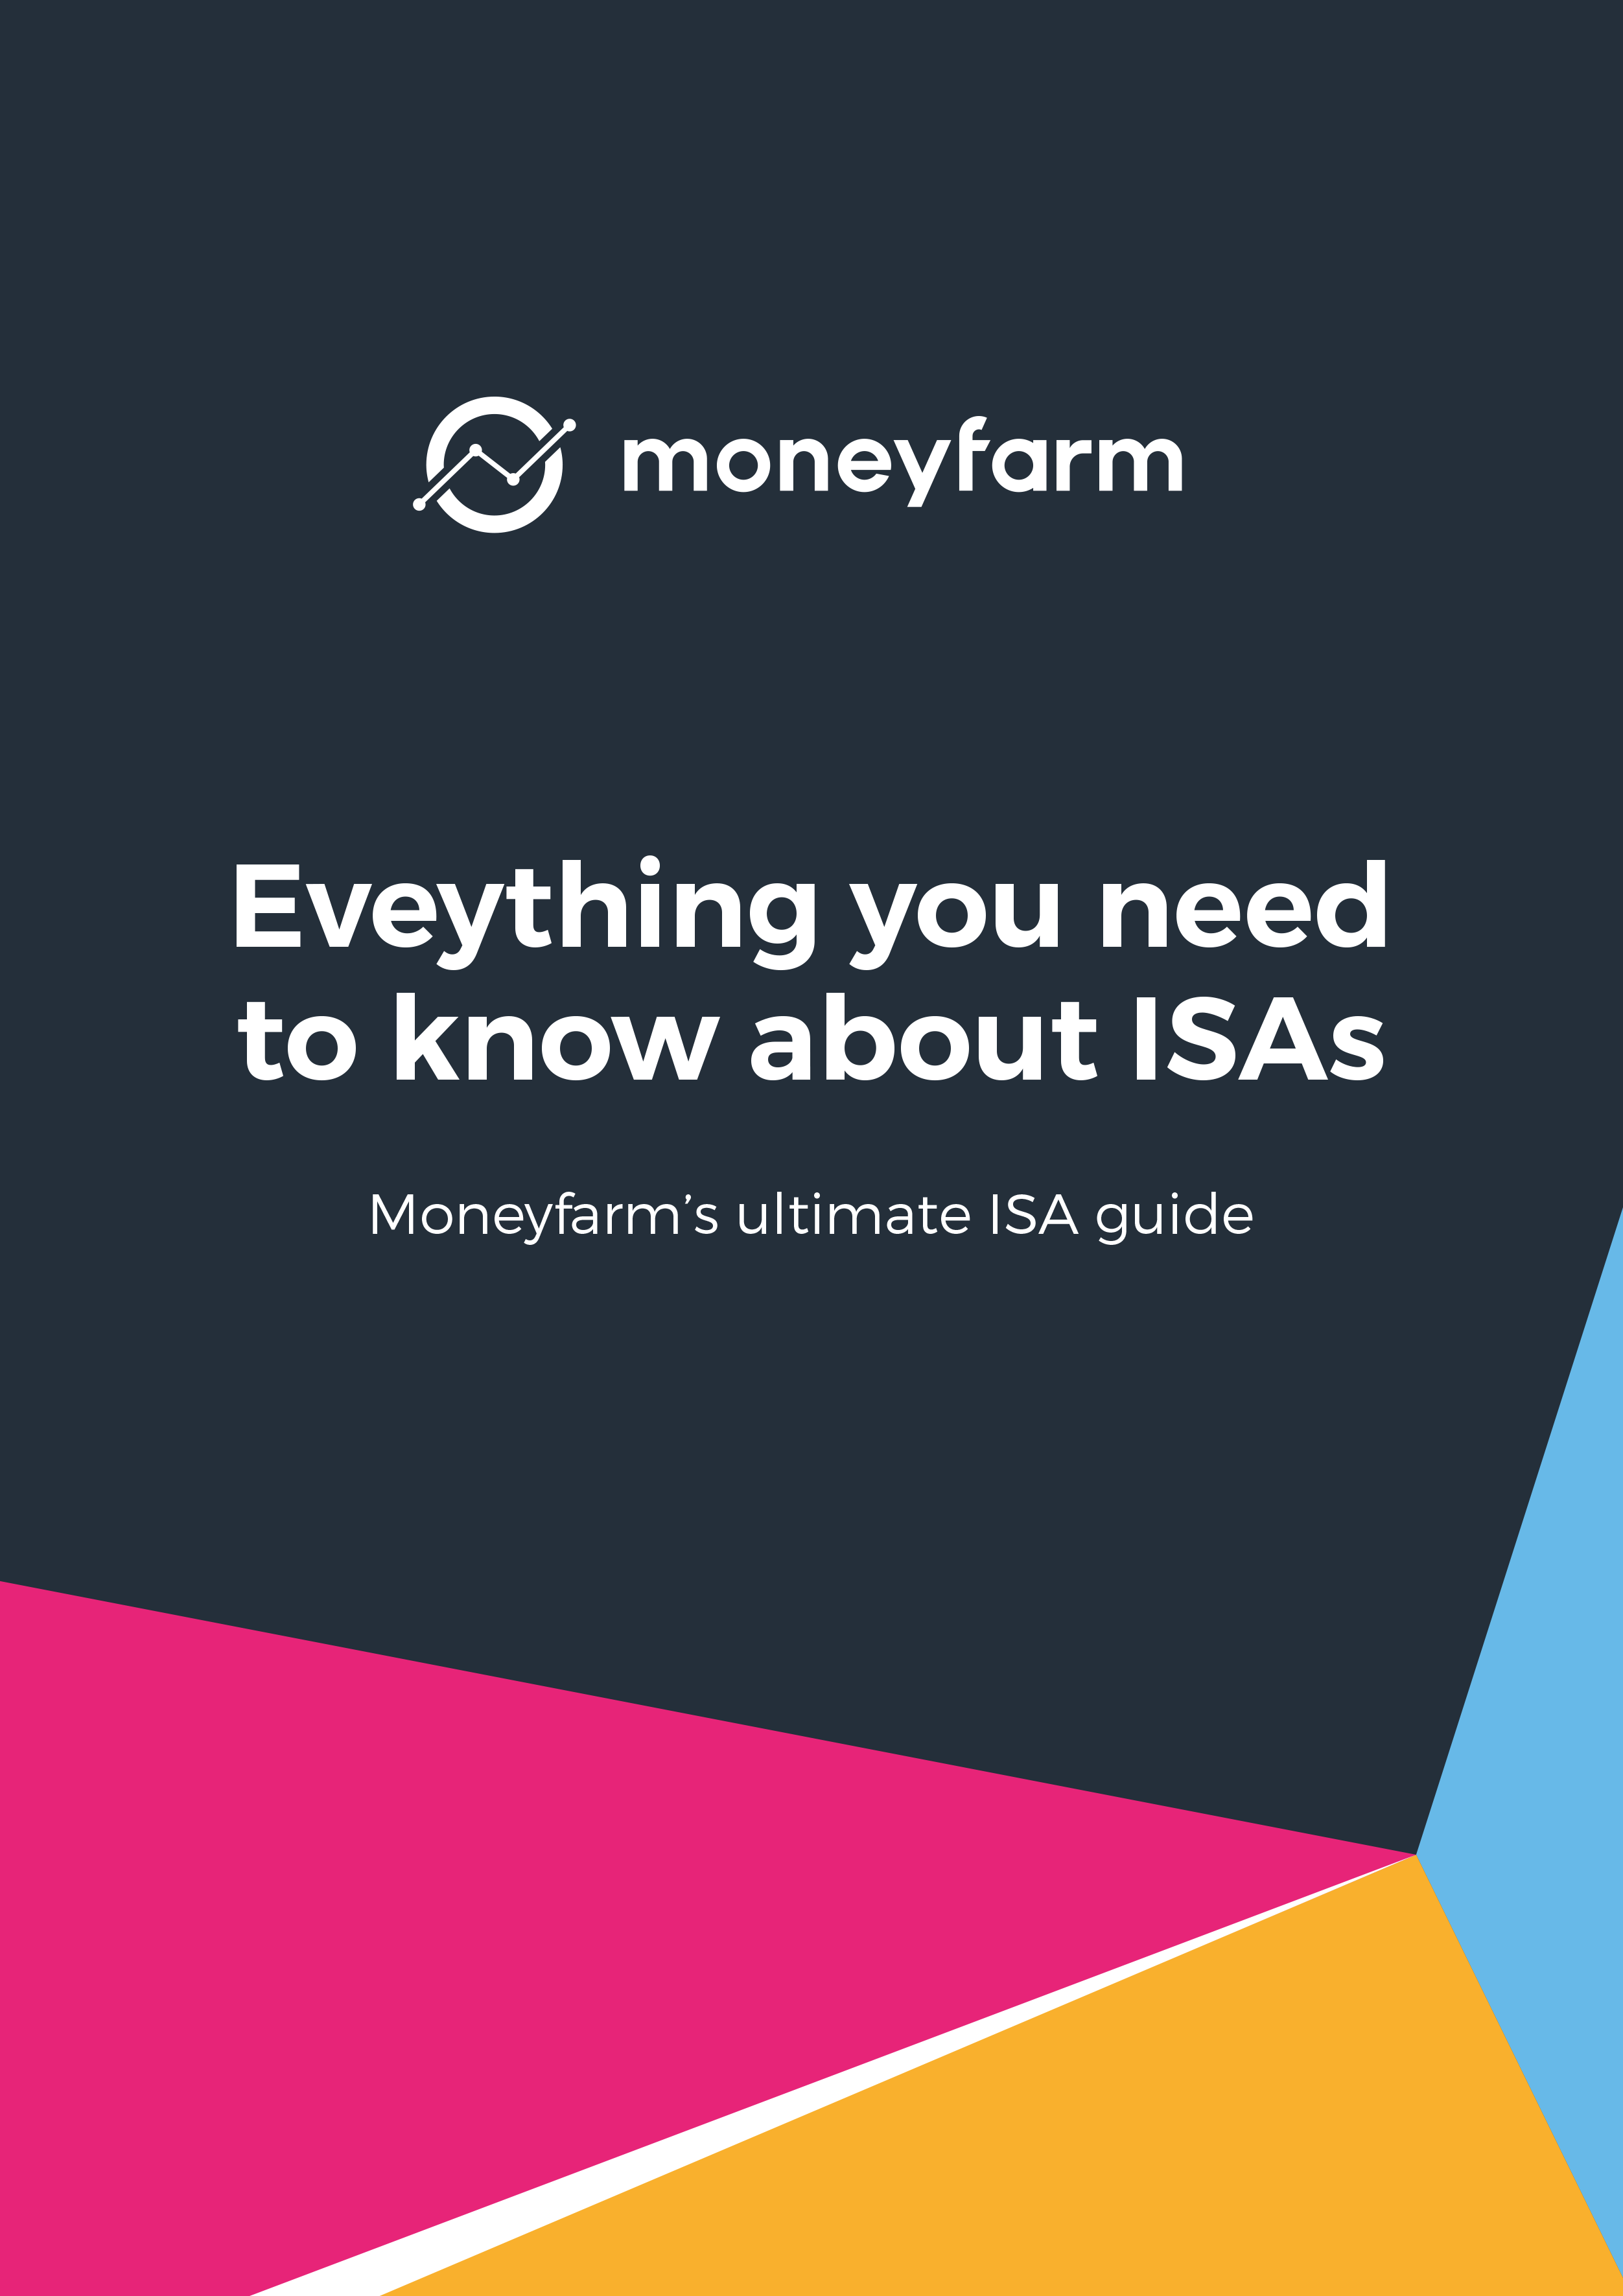 isa-guide